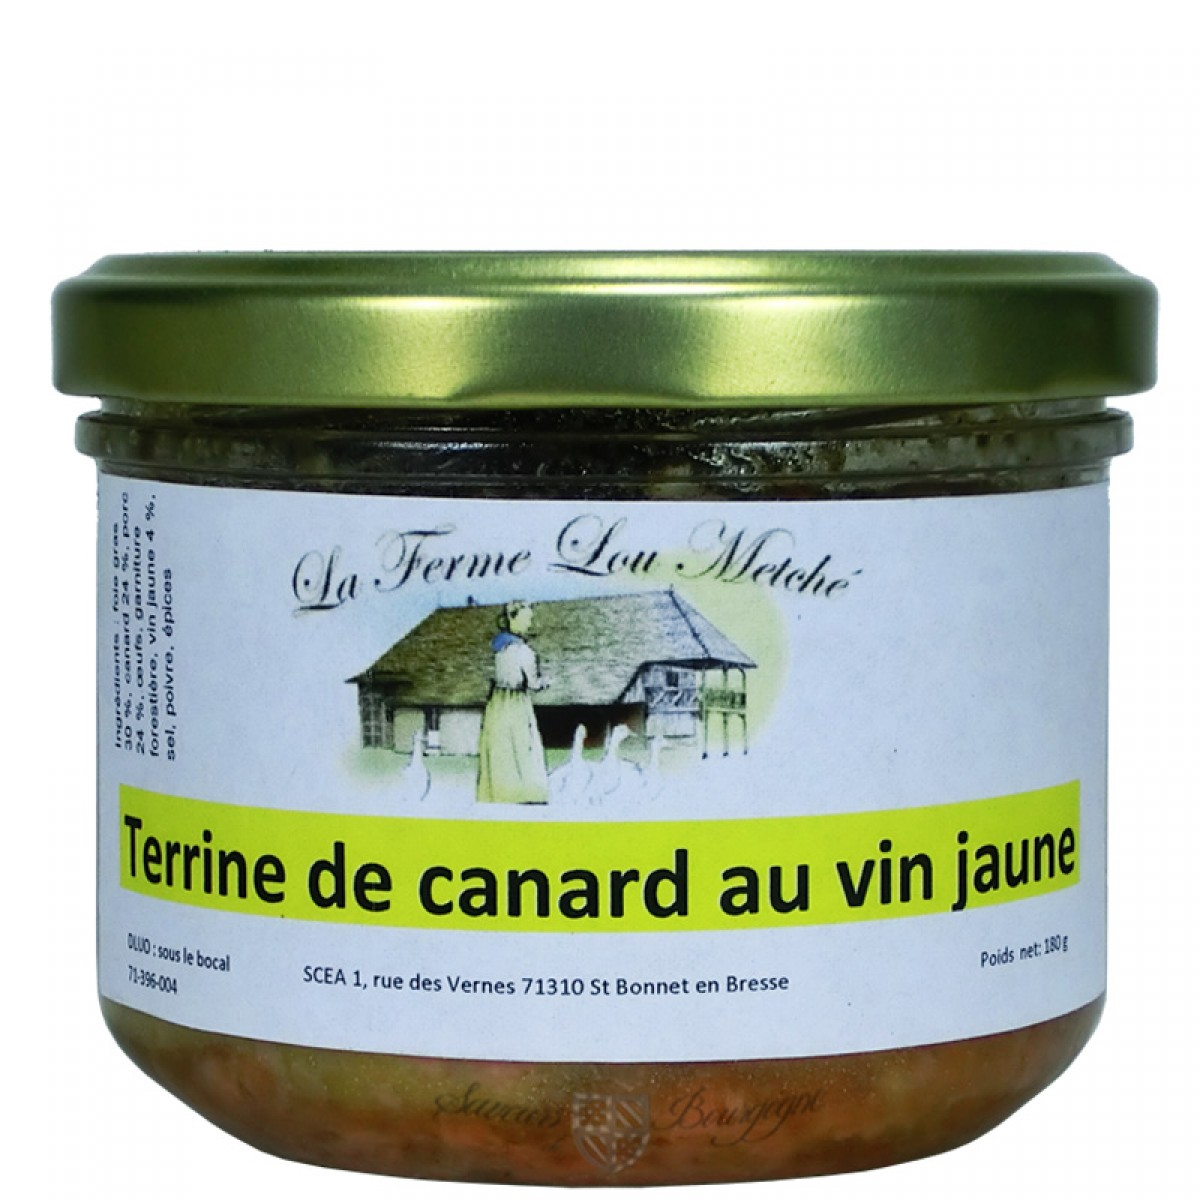 terrine de canard au vin jaune 180g saveurs de bourgogne vente de produits du terroir. Black Bedroom Furniture Sets. Home Design Ideas